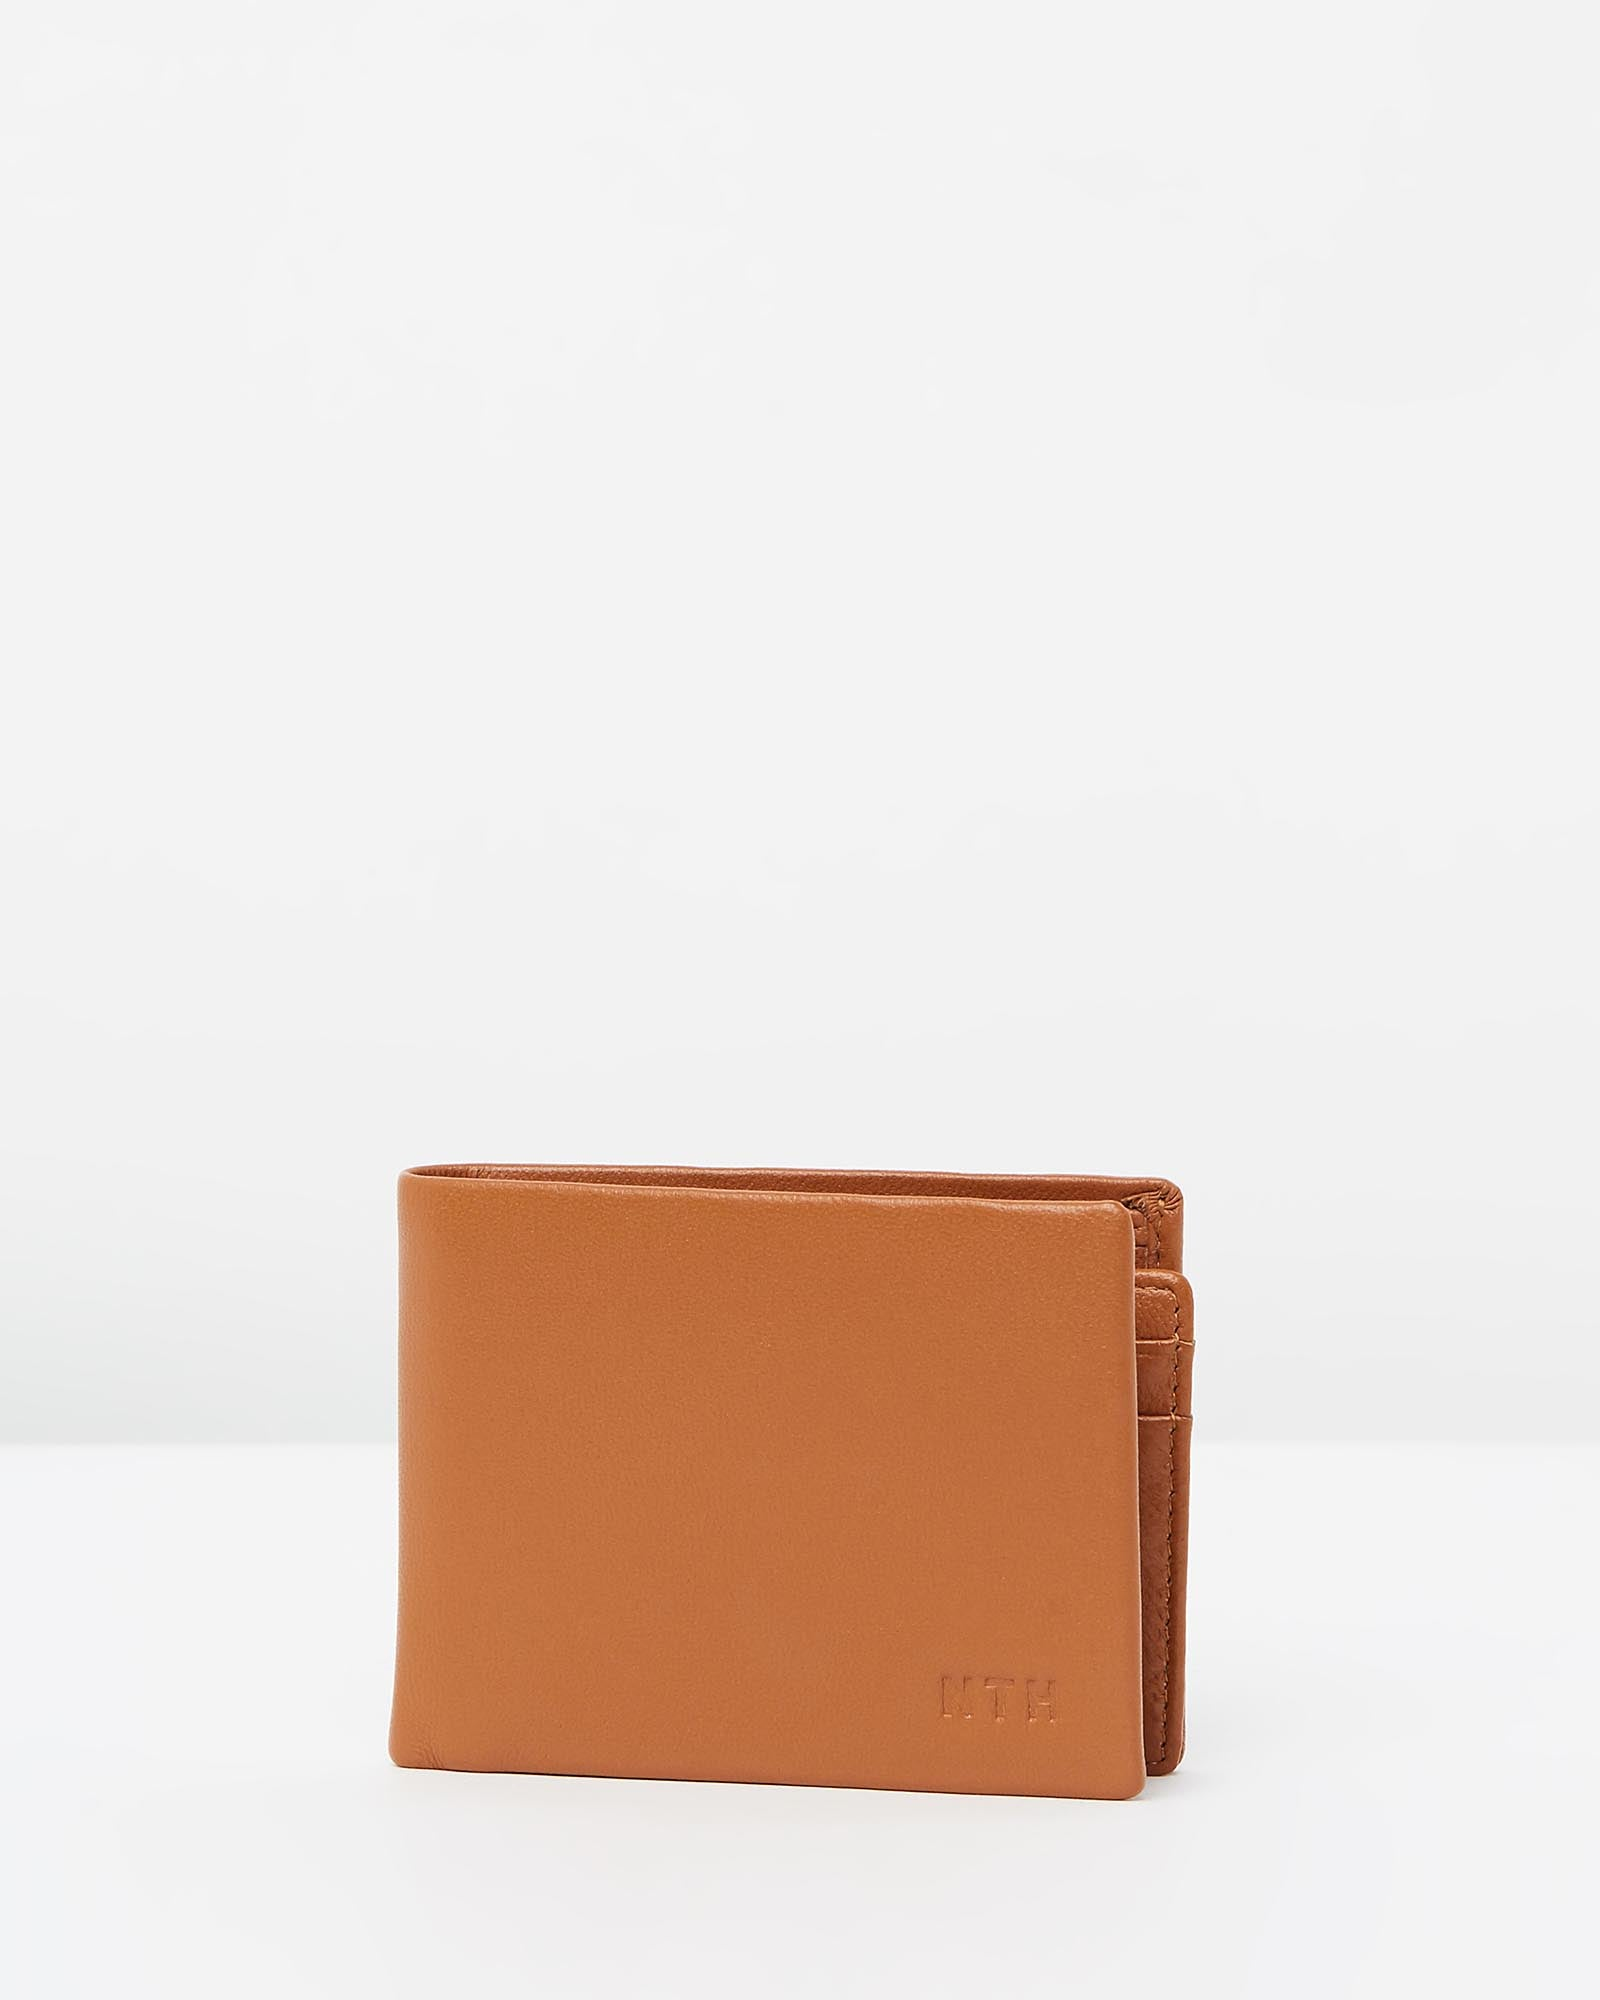 The Gentleman Wallet Leather Tan